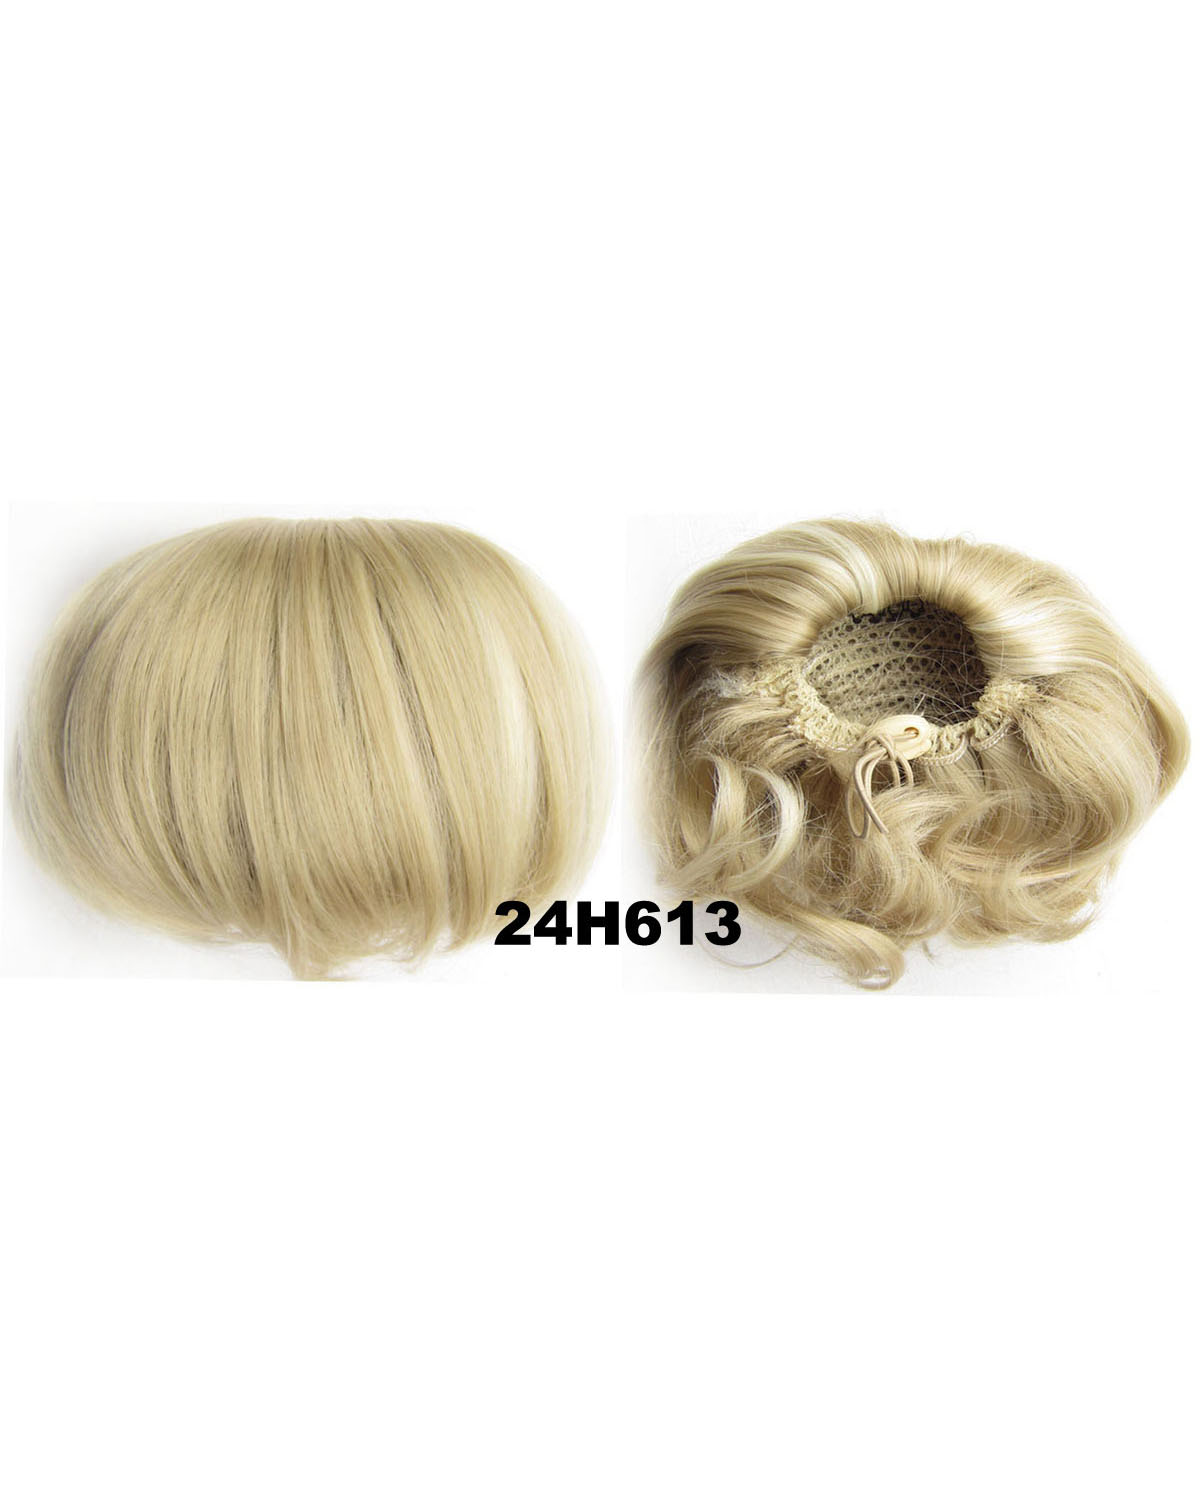 Ladies Straight Short Hair Buns Drawstring Synthetic Hair Extension Bride Scrunchies 24H613